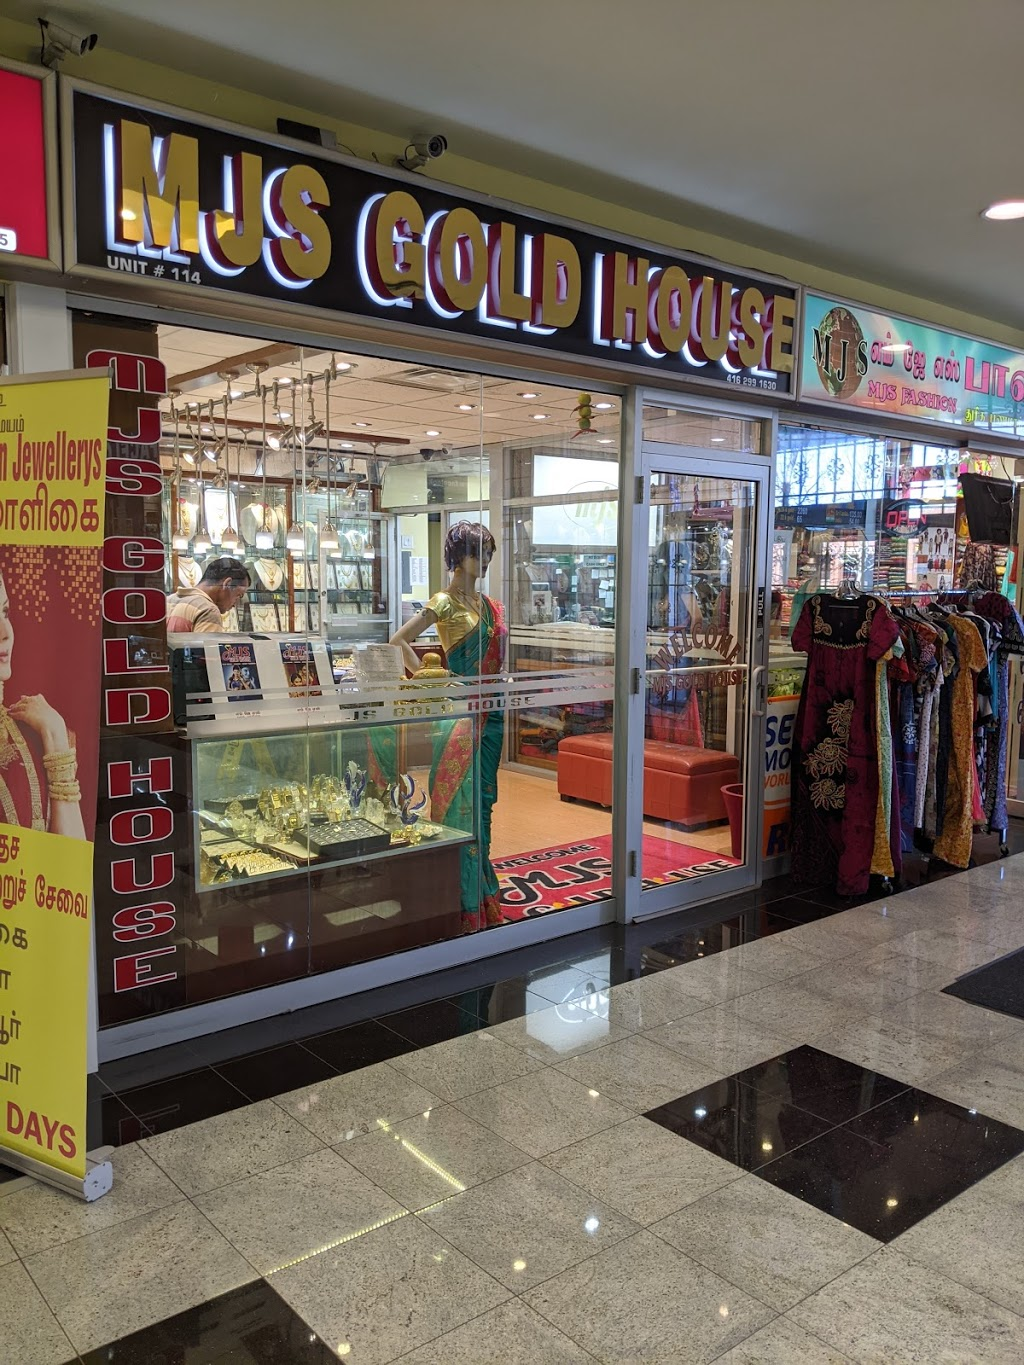 MJS Gold House | jewelry store | 5215 Finch Ave E #203, Scarborough, ON M1S 0C2, Canada | 4162991630 OR +1 416-299-1630